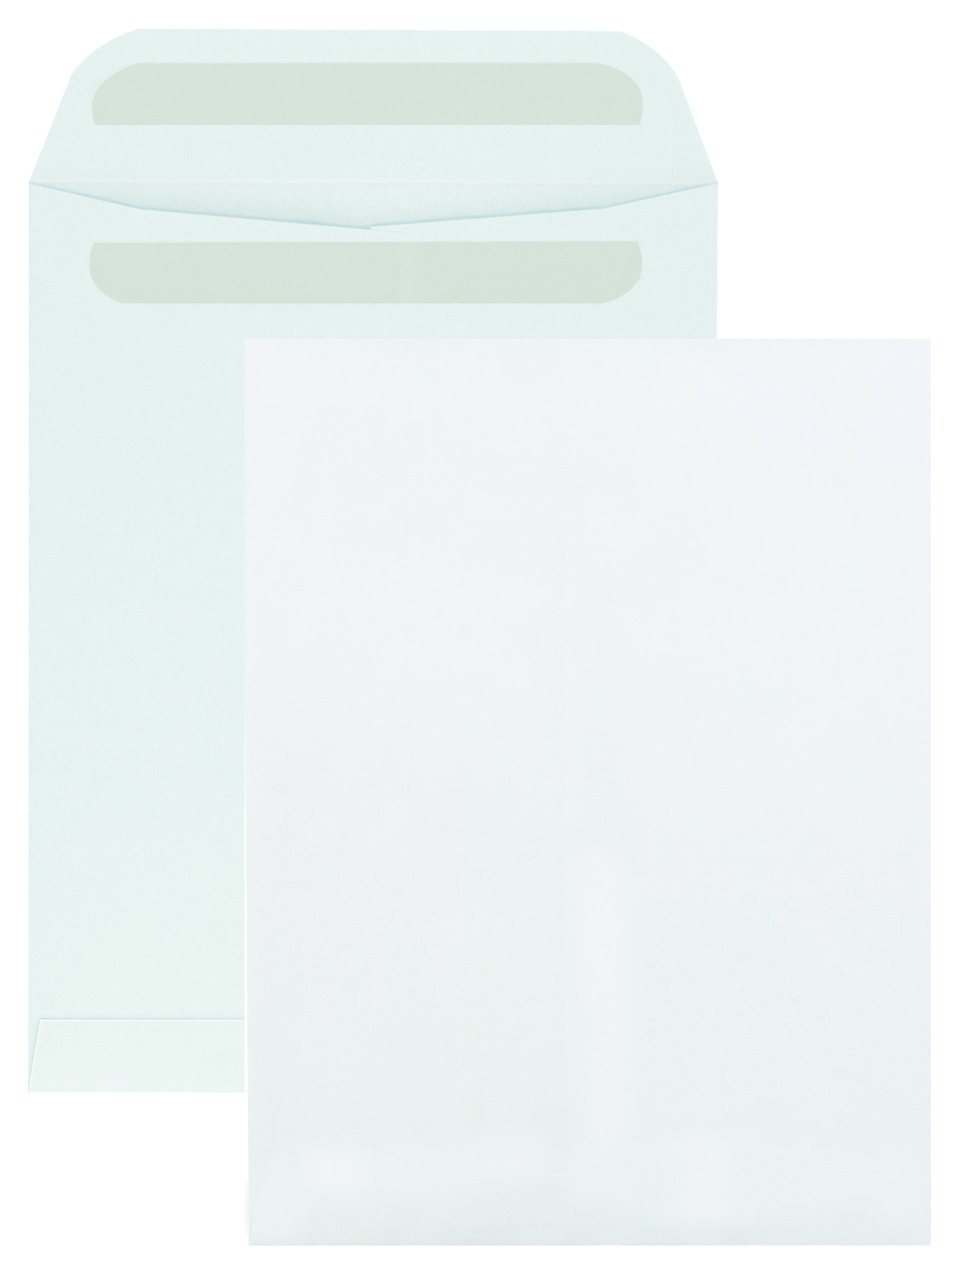 Columbian CO740 9x12-Inch Catalog Self-Seal Recycled White Envelopes, 100 Count